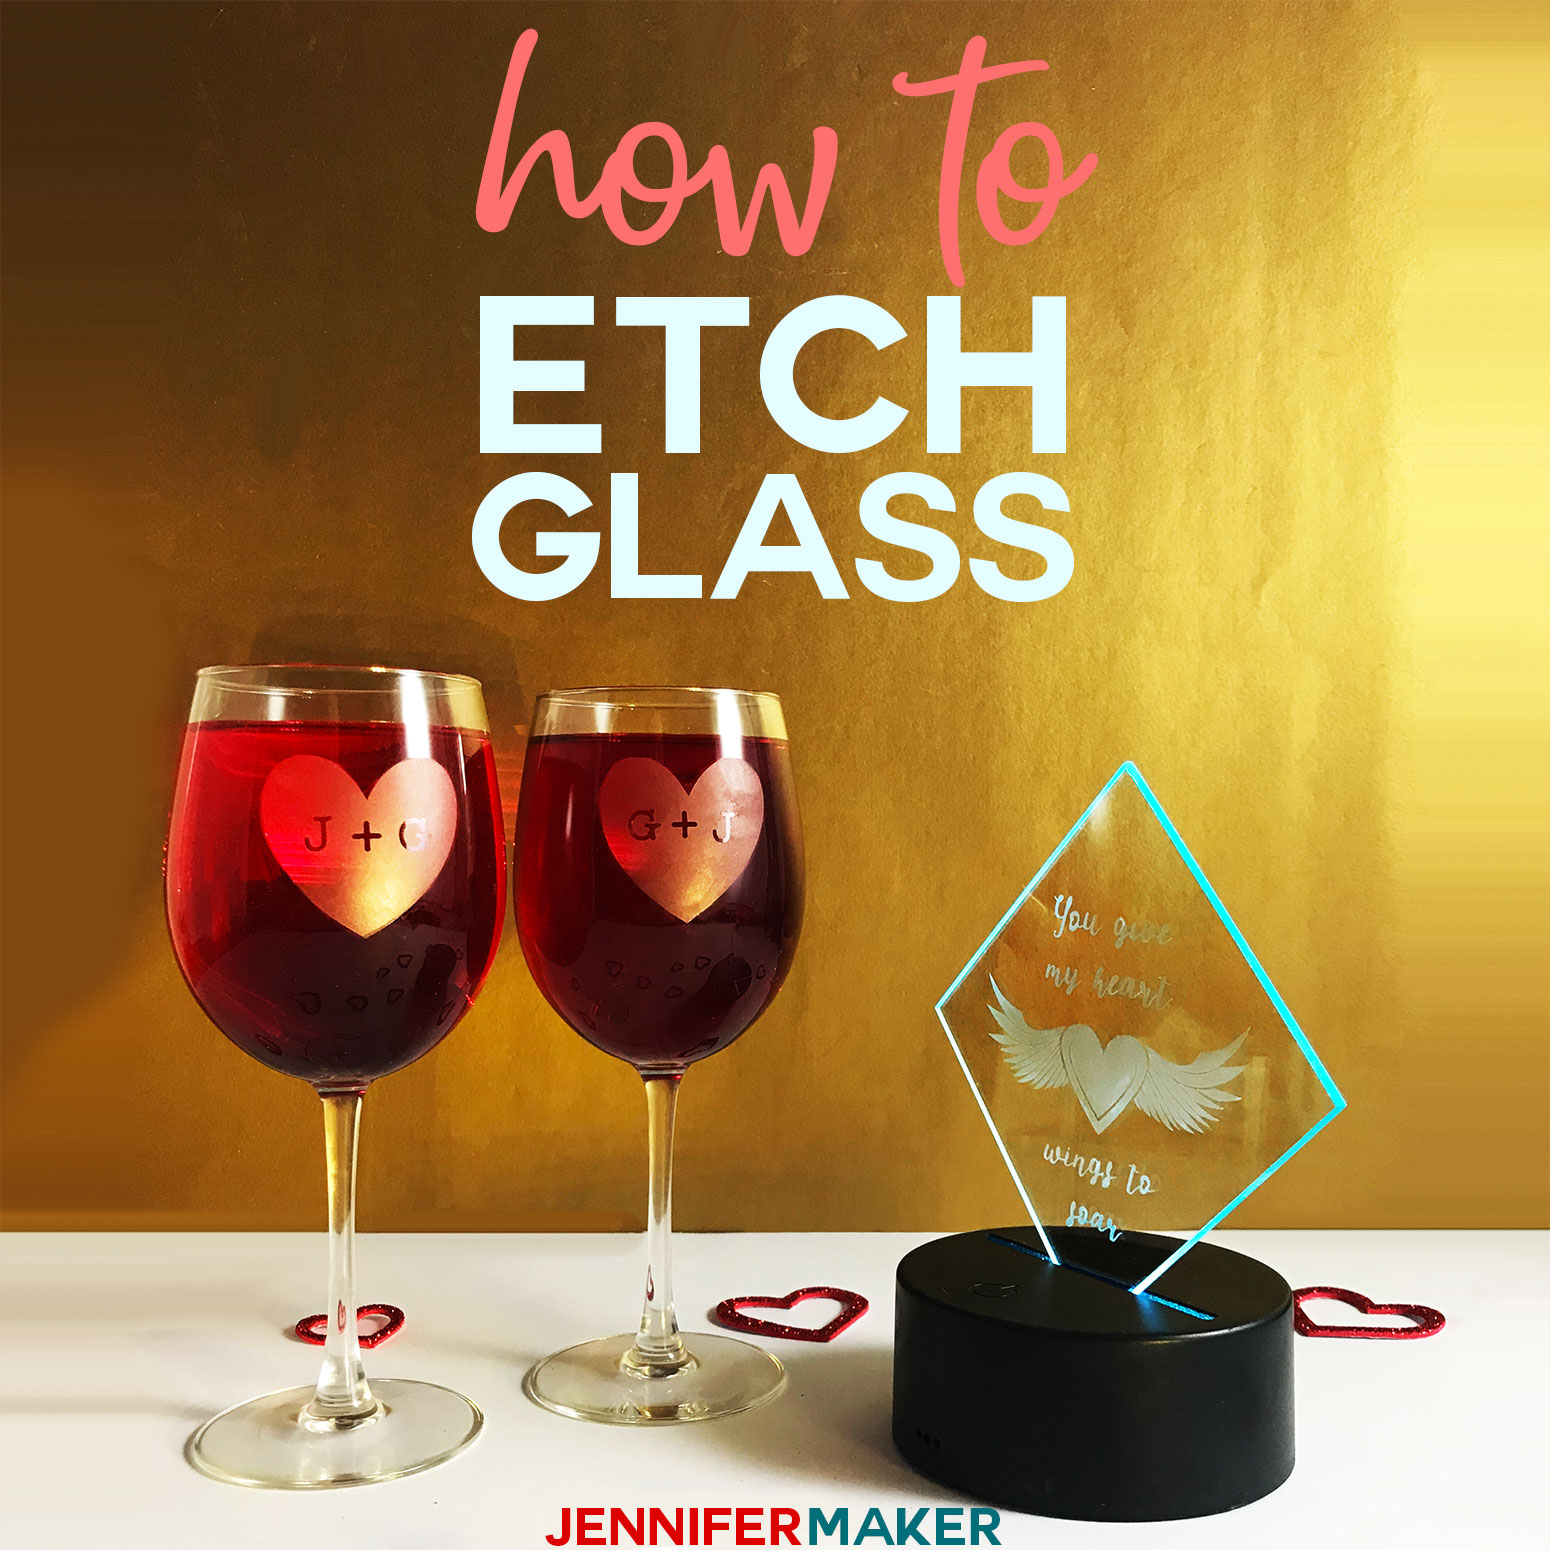 How to etch glass the easy way with vinyl decals cut on your Cricut and Armour Etch! #cricutmade #cricutdesignspace #etching #diyhomedecor #diygift